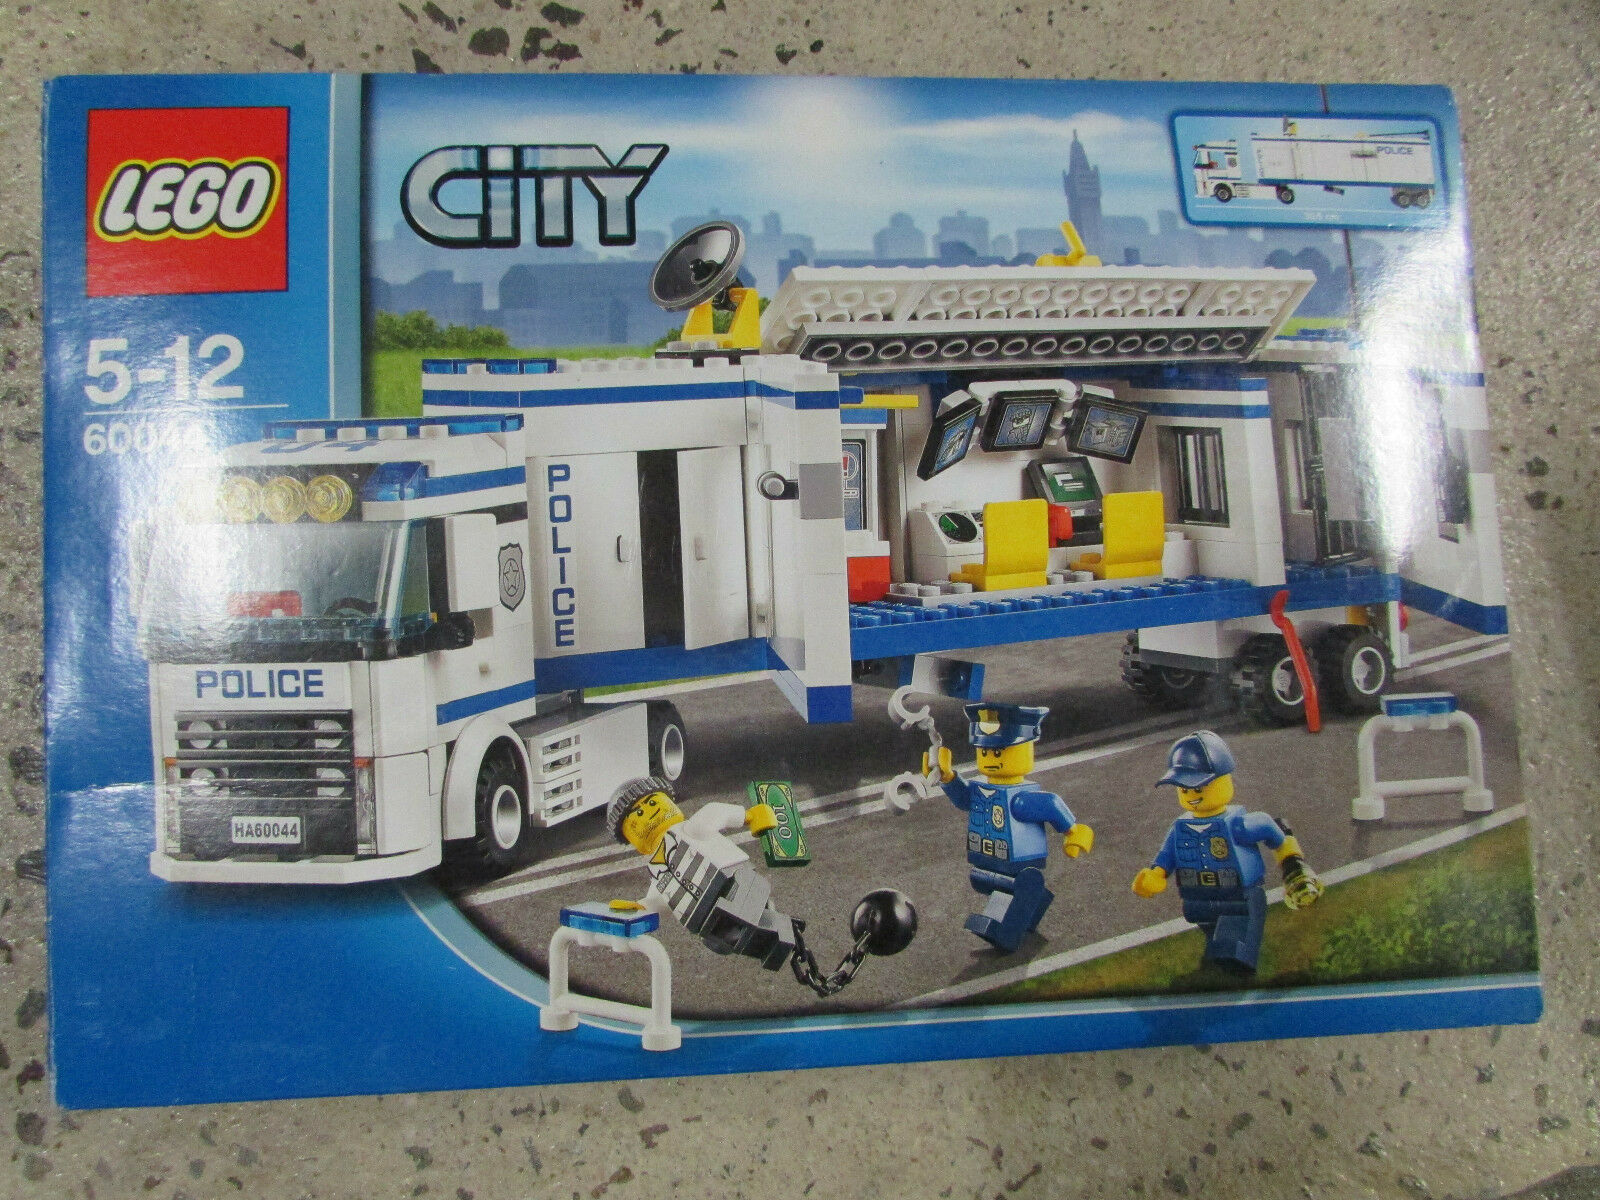 BOXED BOXED BOXED SET LEGO CITY 60044 87258f